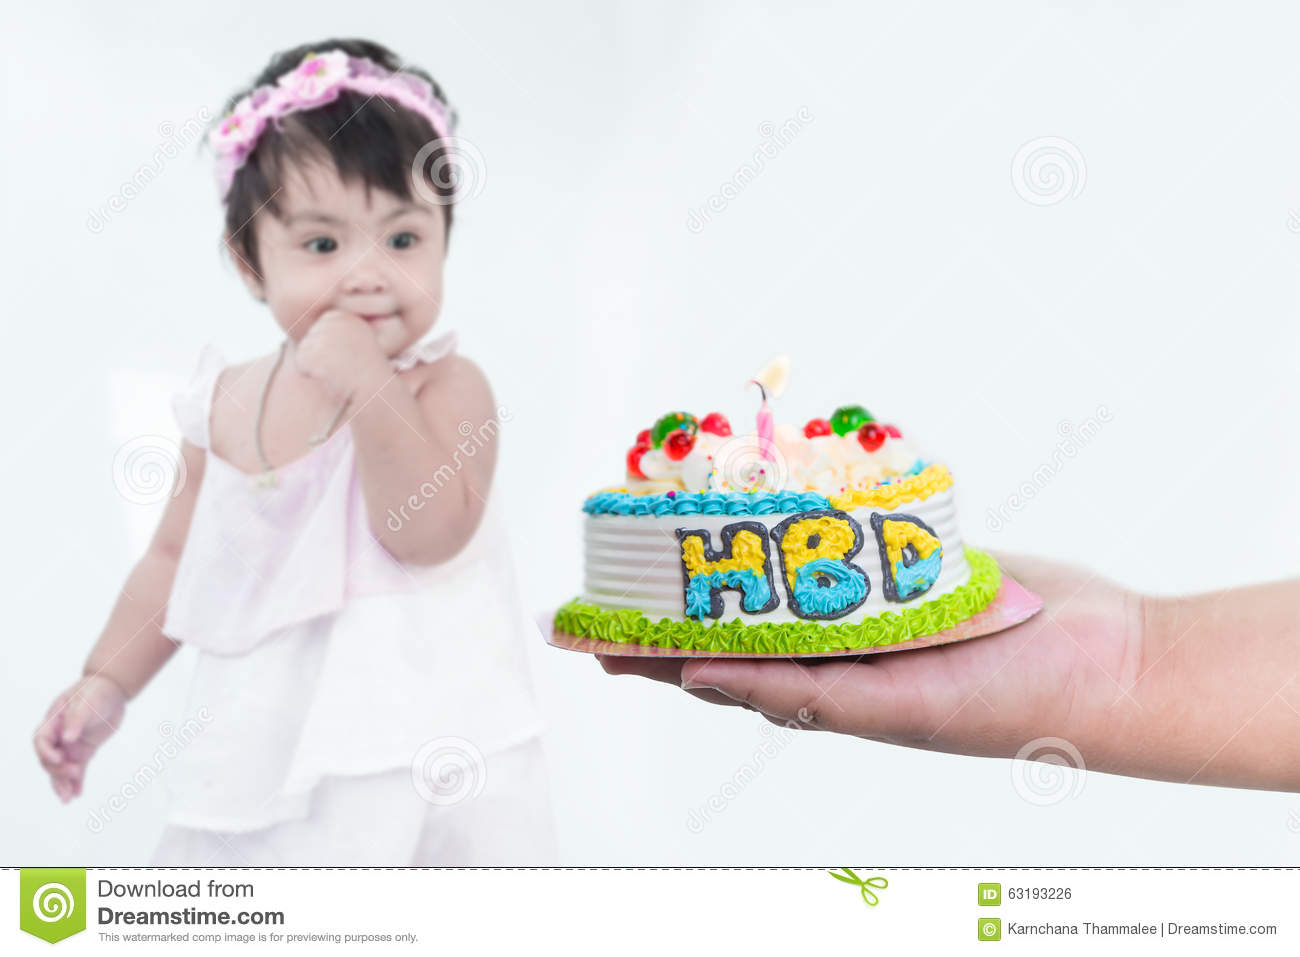 Blurry Asian girl and selective focus at happy birthday cake on